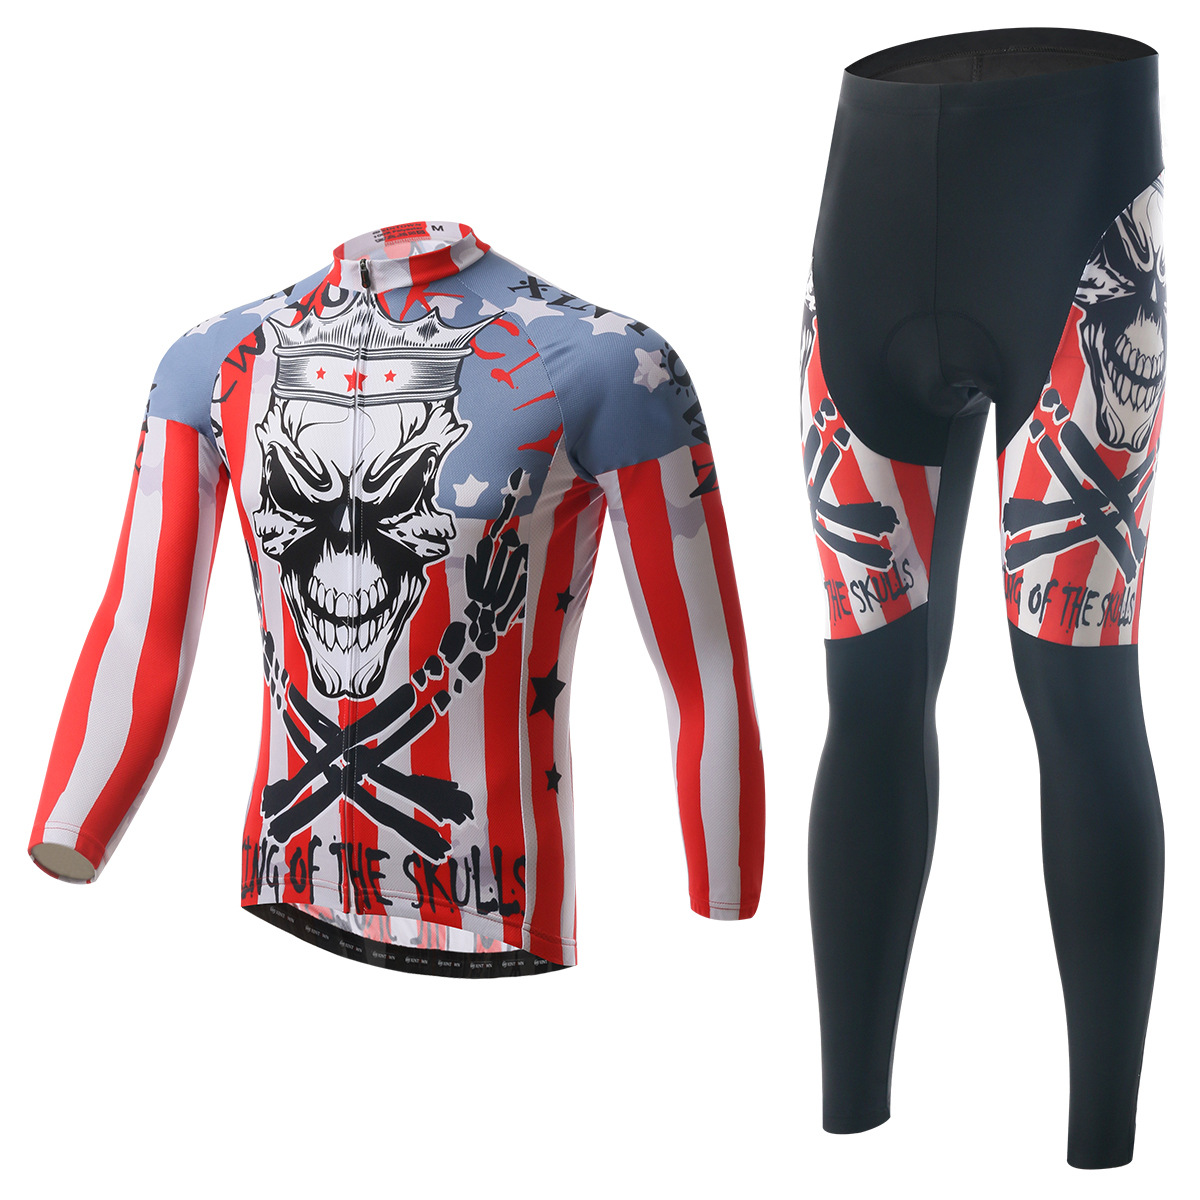 XINTOWN Skeleton Emperor Bike riding Jersey long sleeve suit wear spring autumn moisture perspiration quick-drying clothes pants